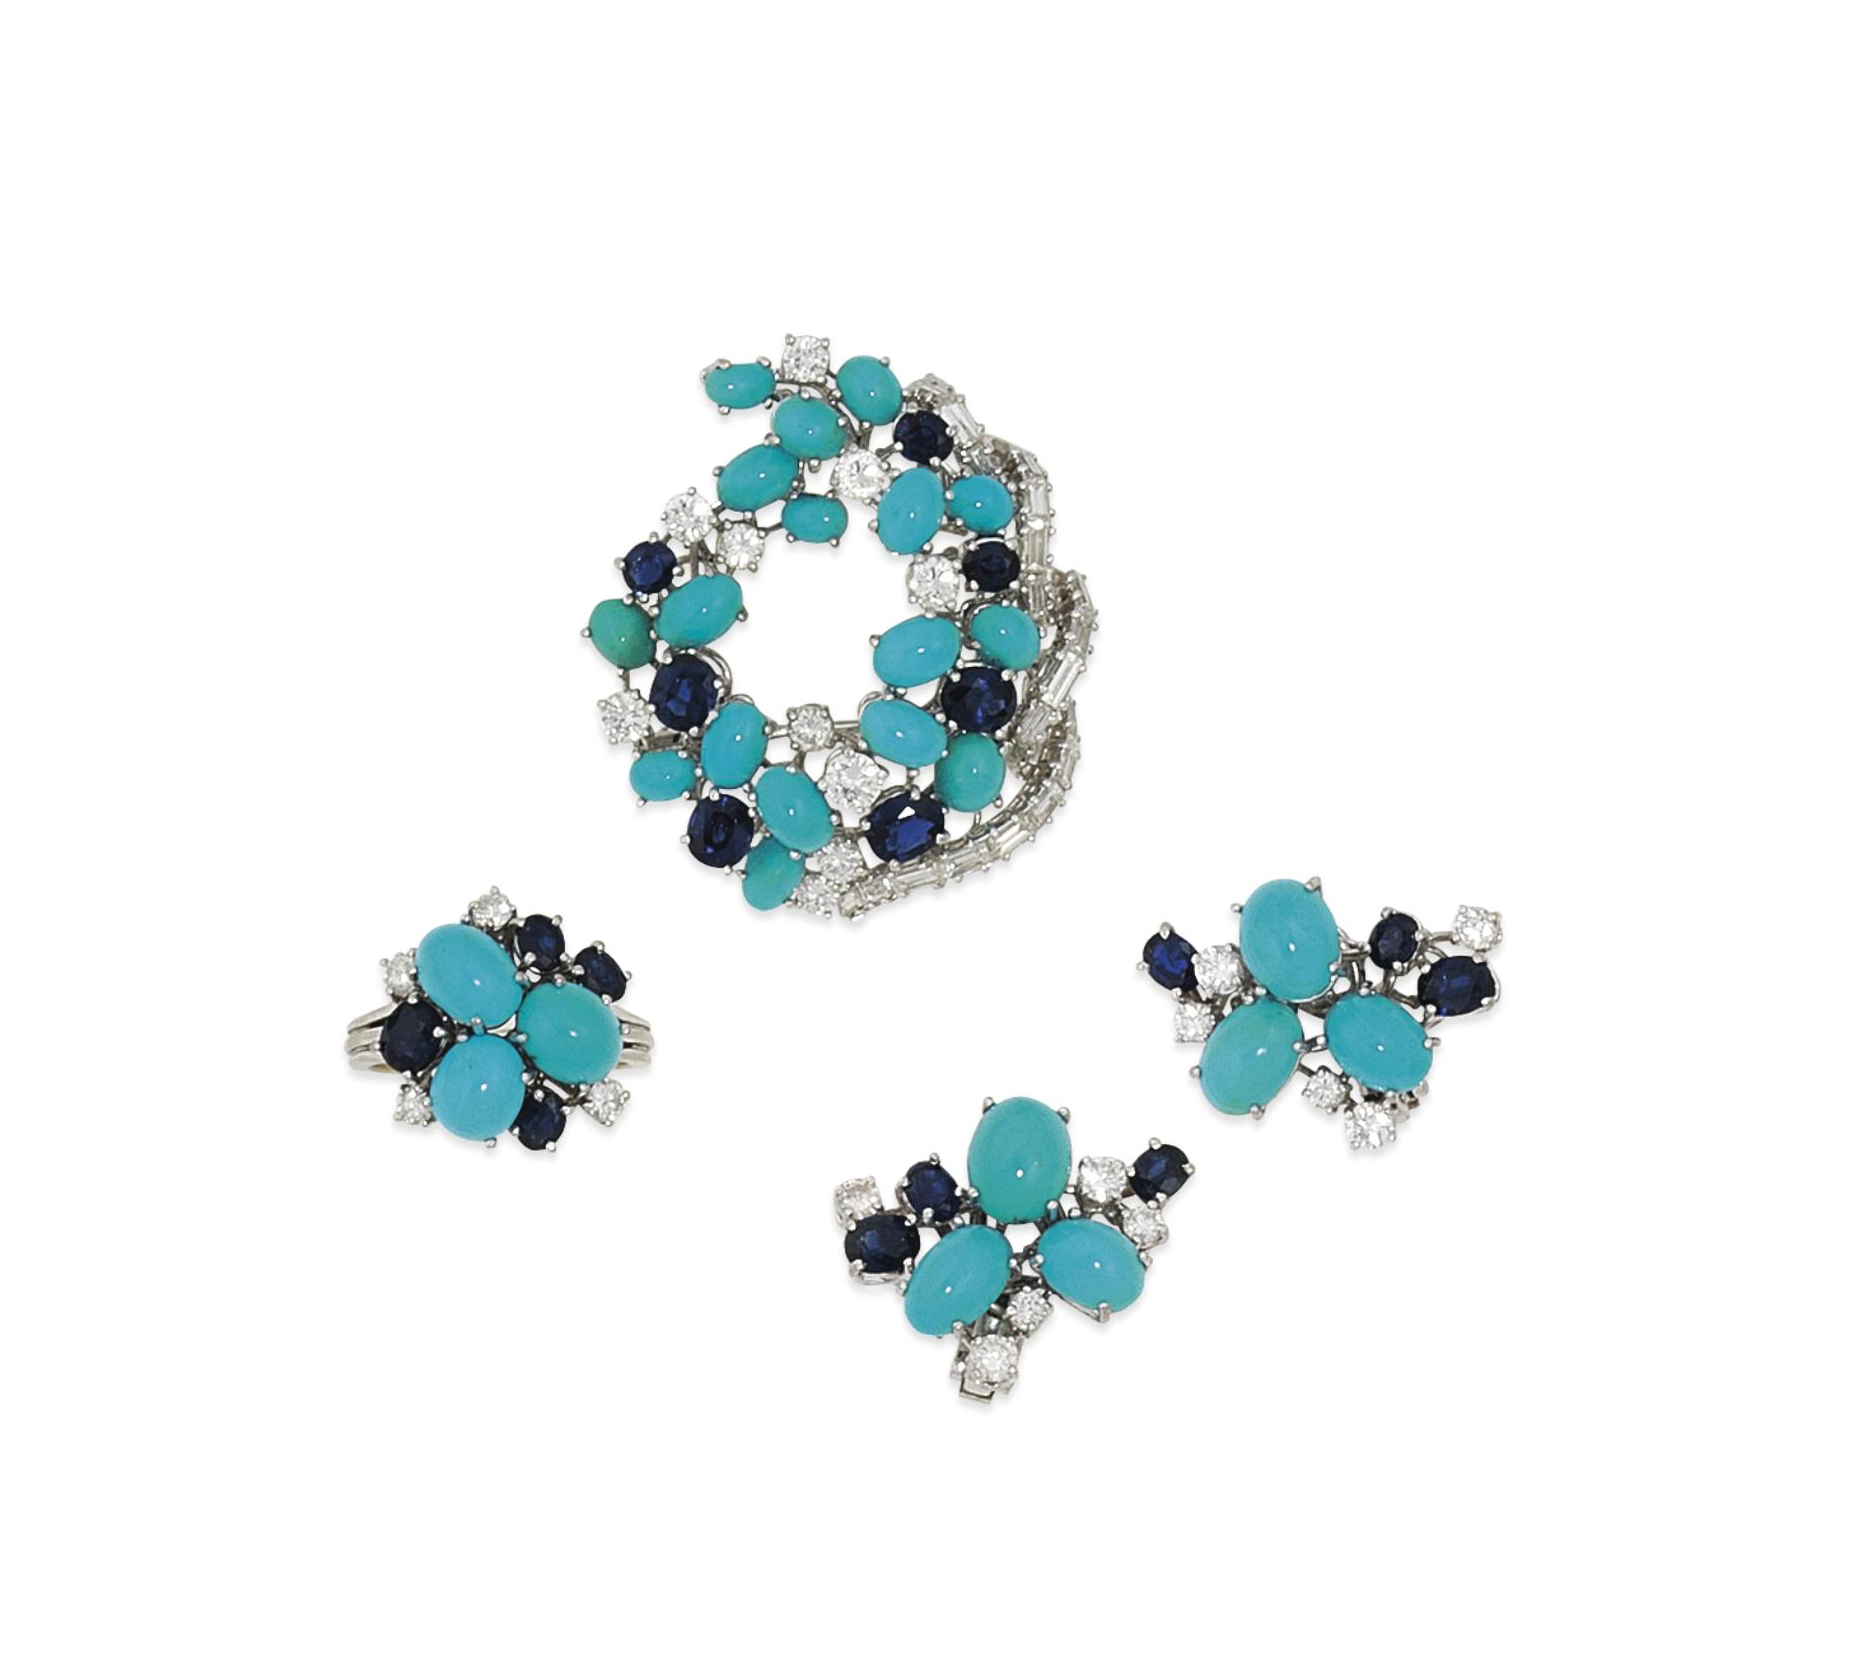 A turquoise, sapphire and diamond brooch, ring and earring suite